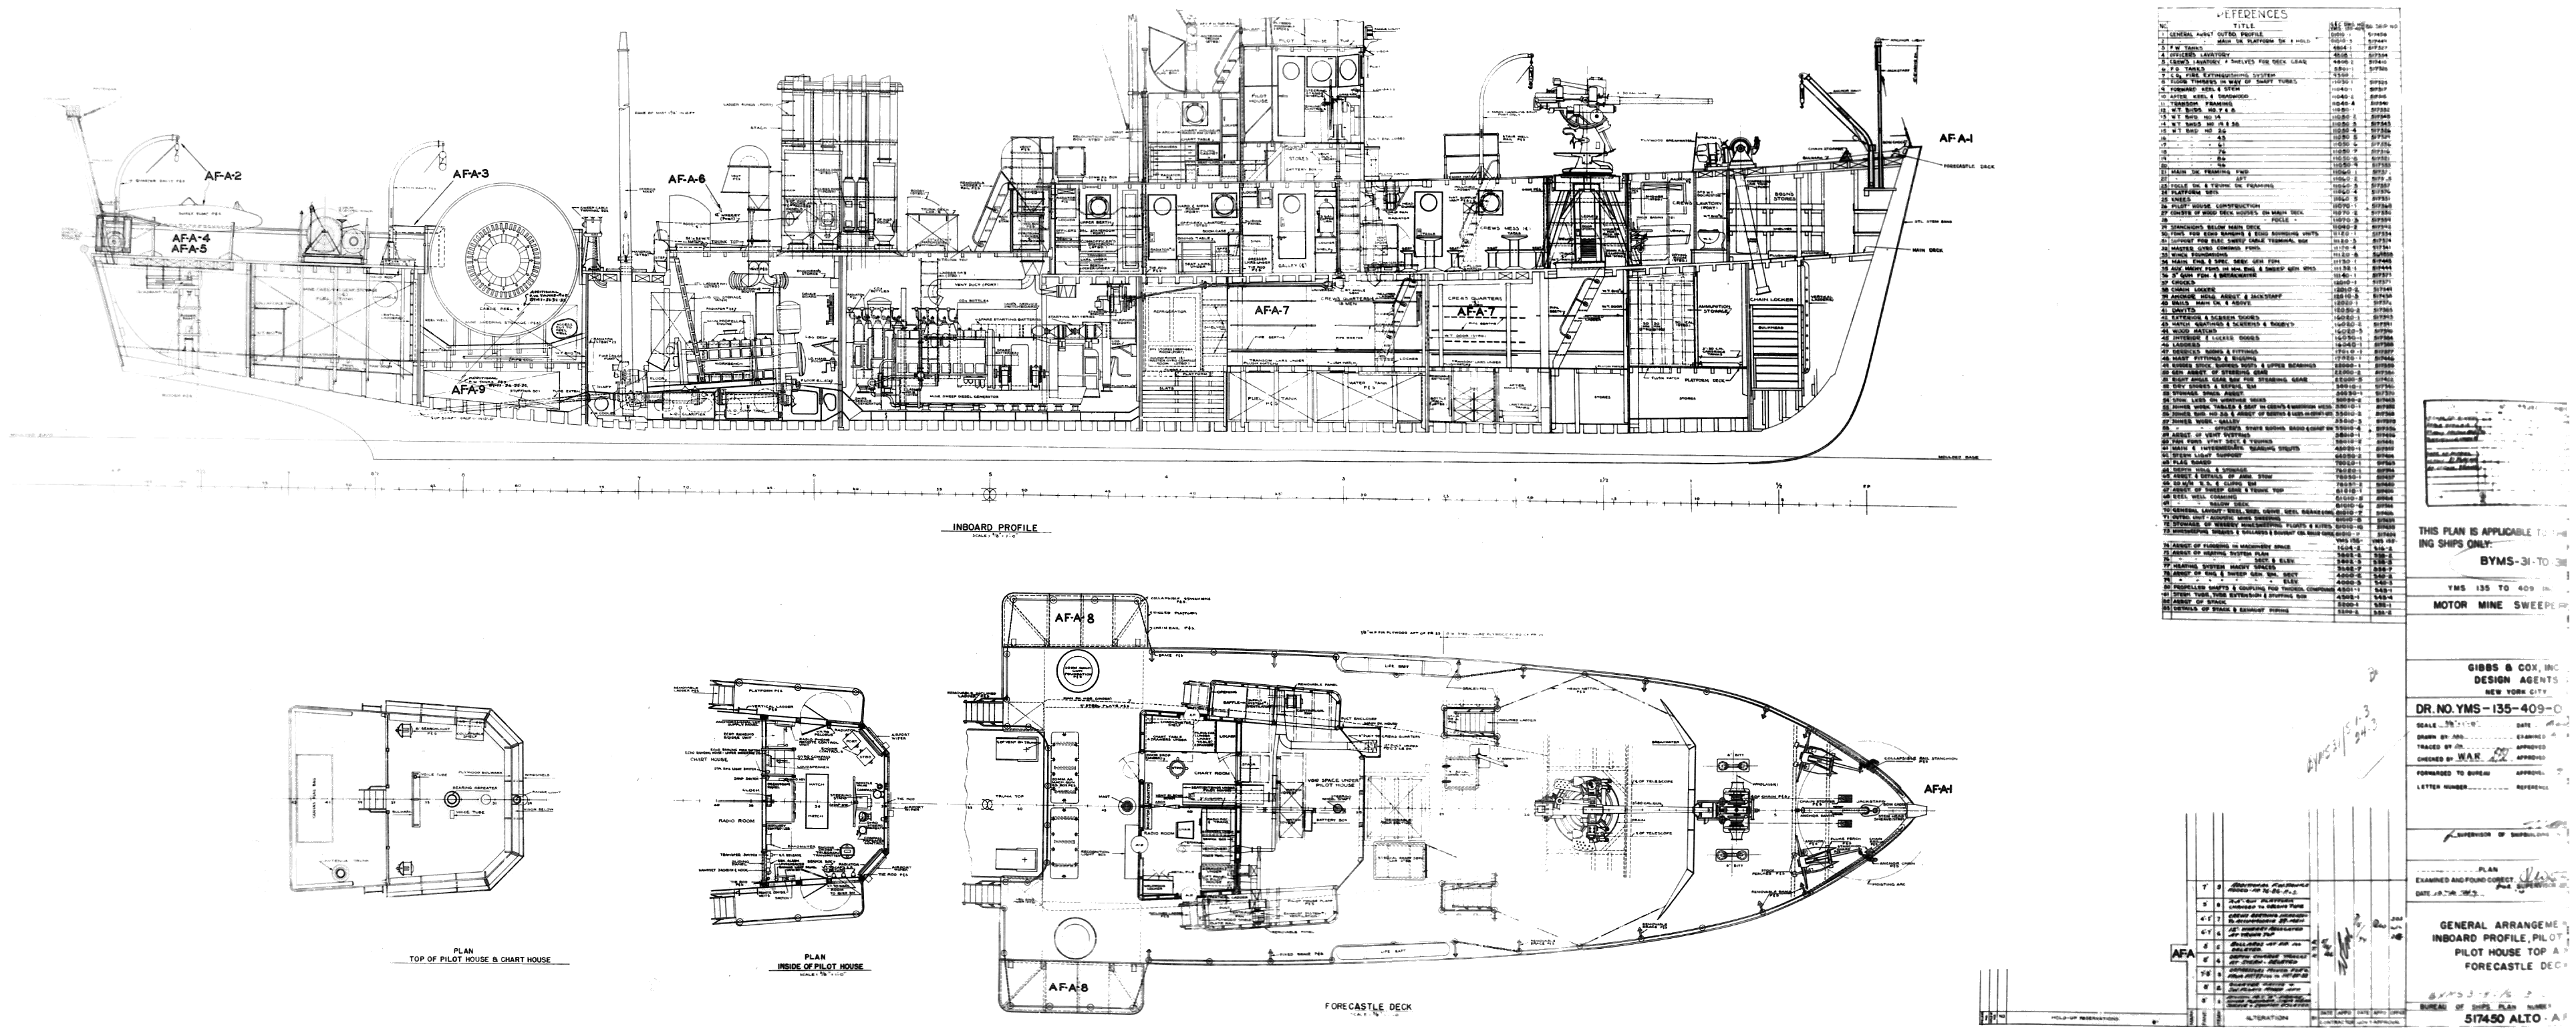 Blueprints yms 299 yms 135 subclass blueprint malvernweather Choice Image